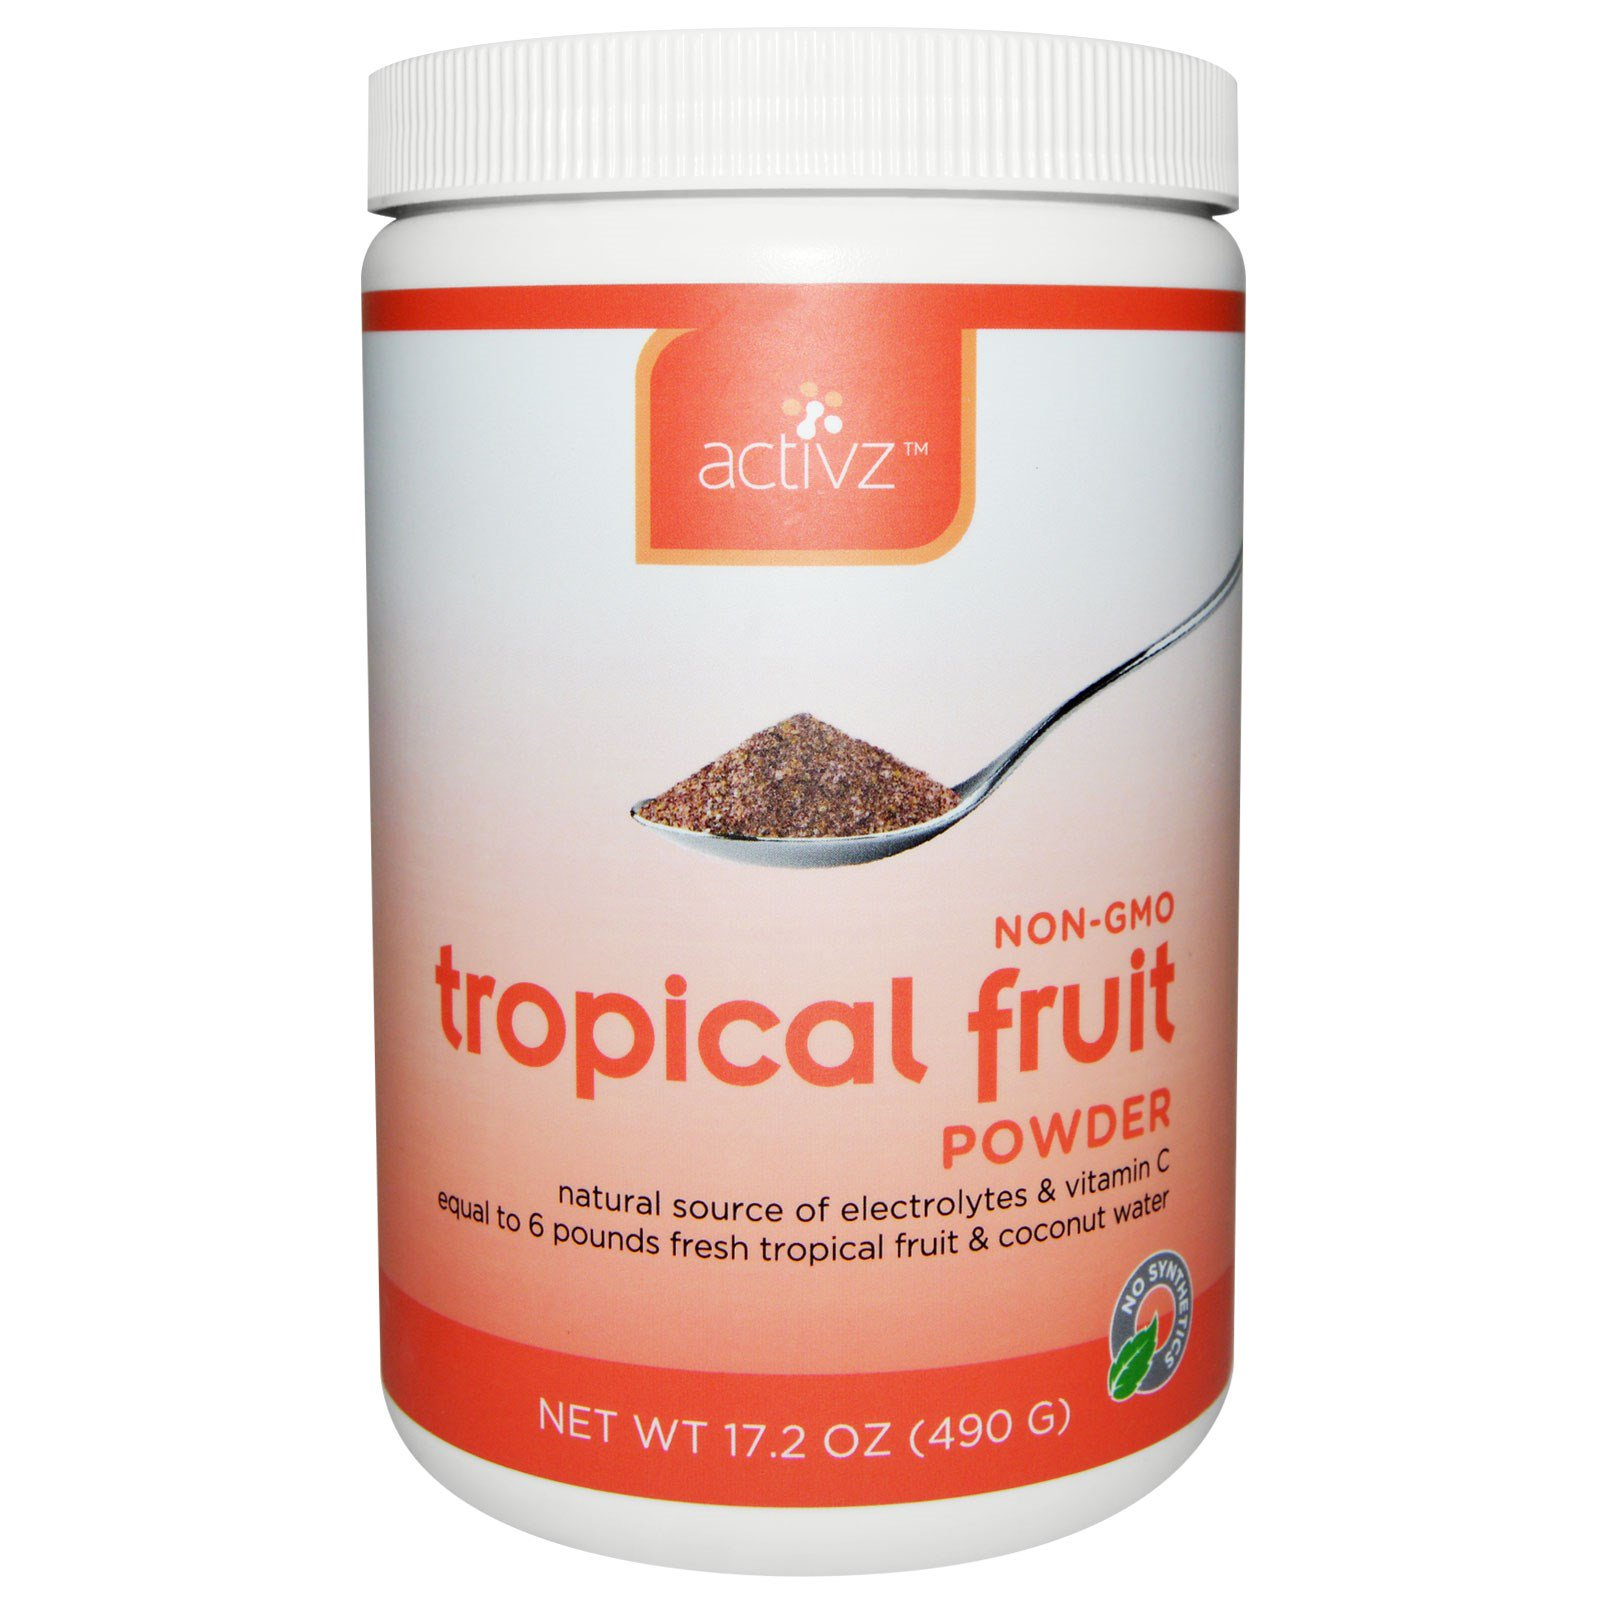 Activz, Tropical Fruit Powder, 17.2 oz (490 g)